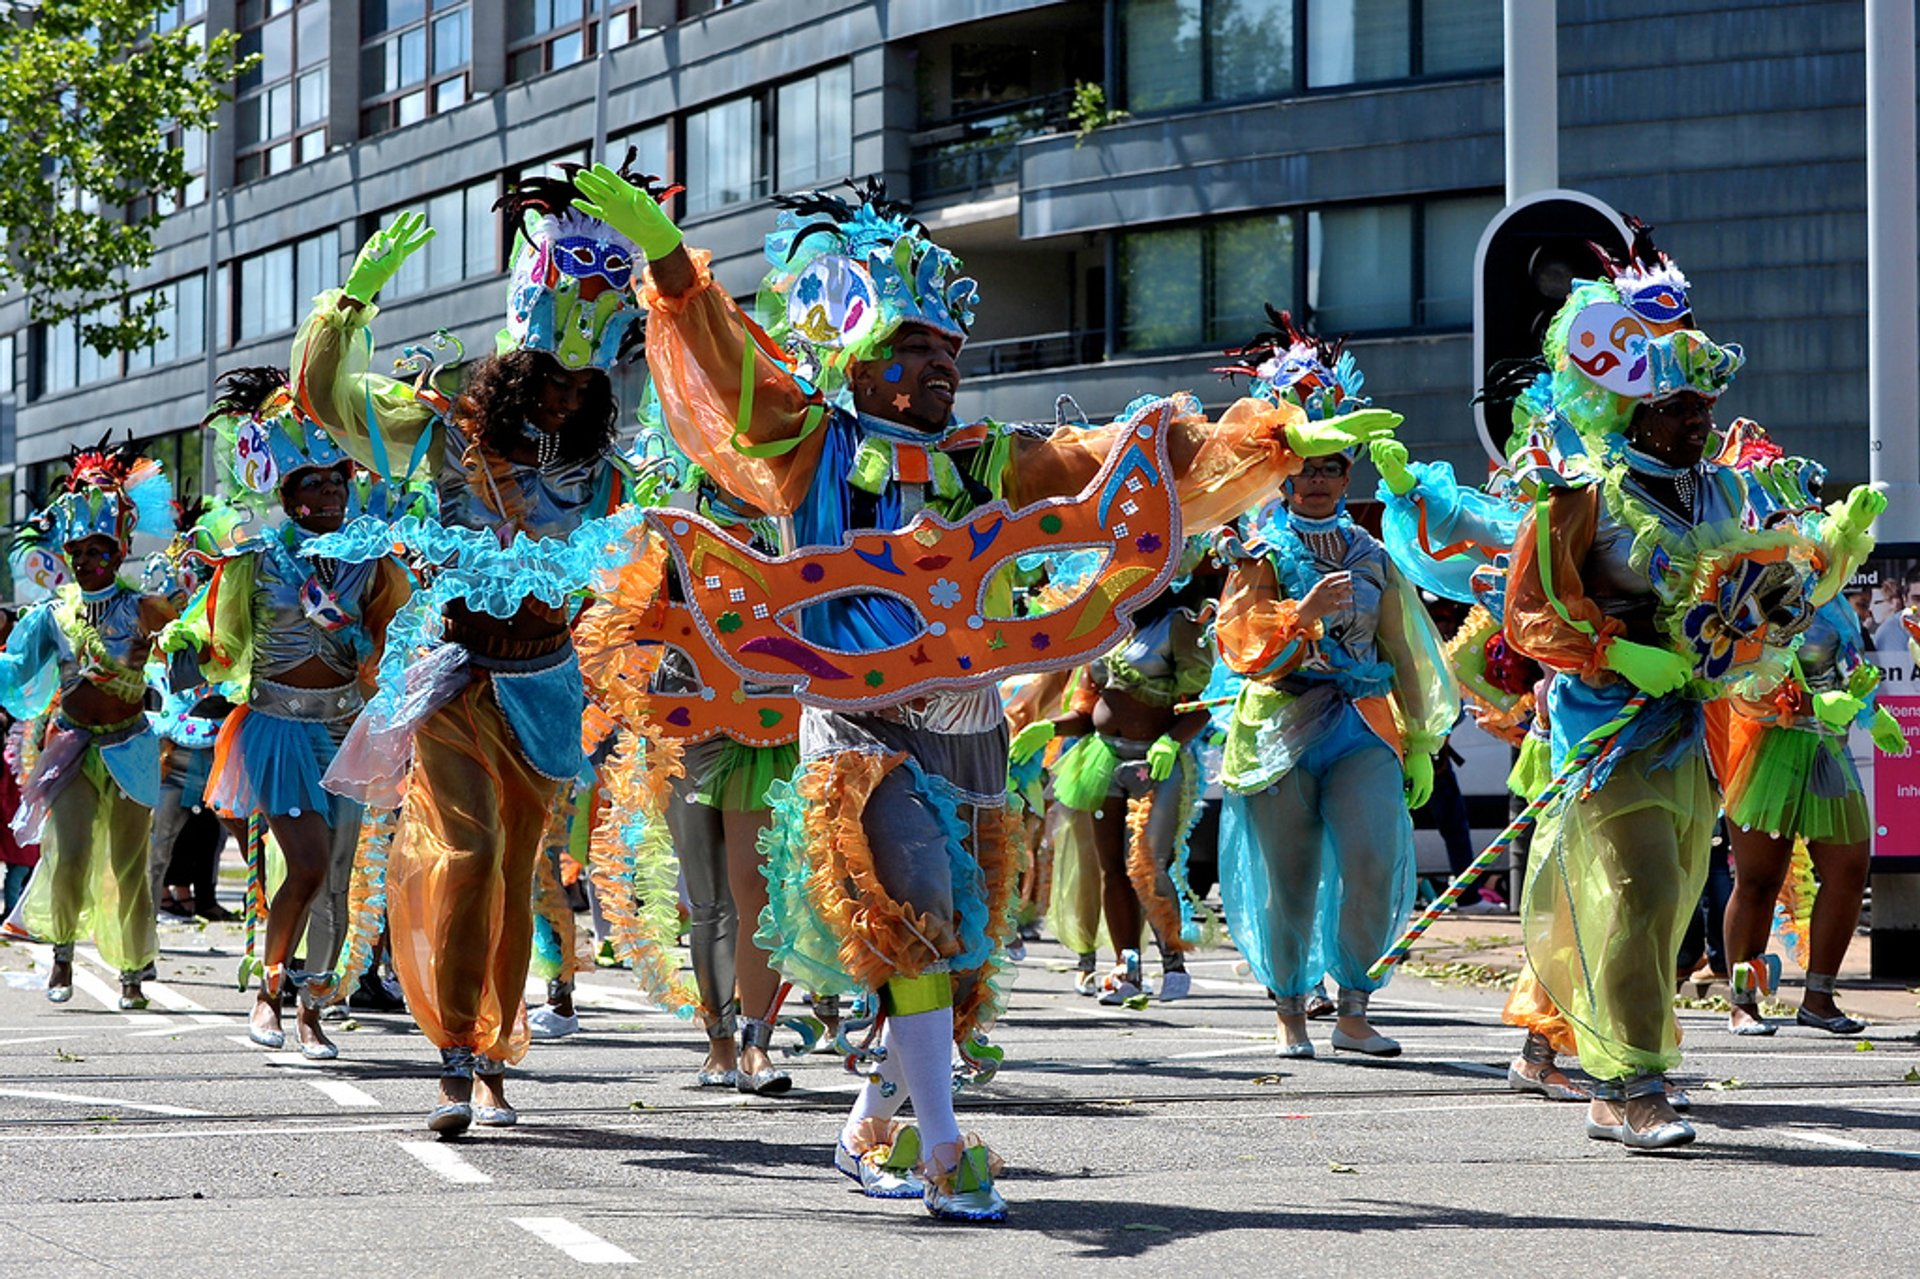 Zomercarnaval in The Netherlands 2020 - Best Time